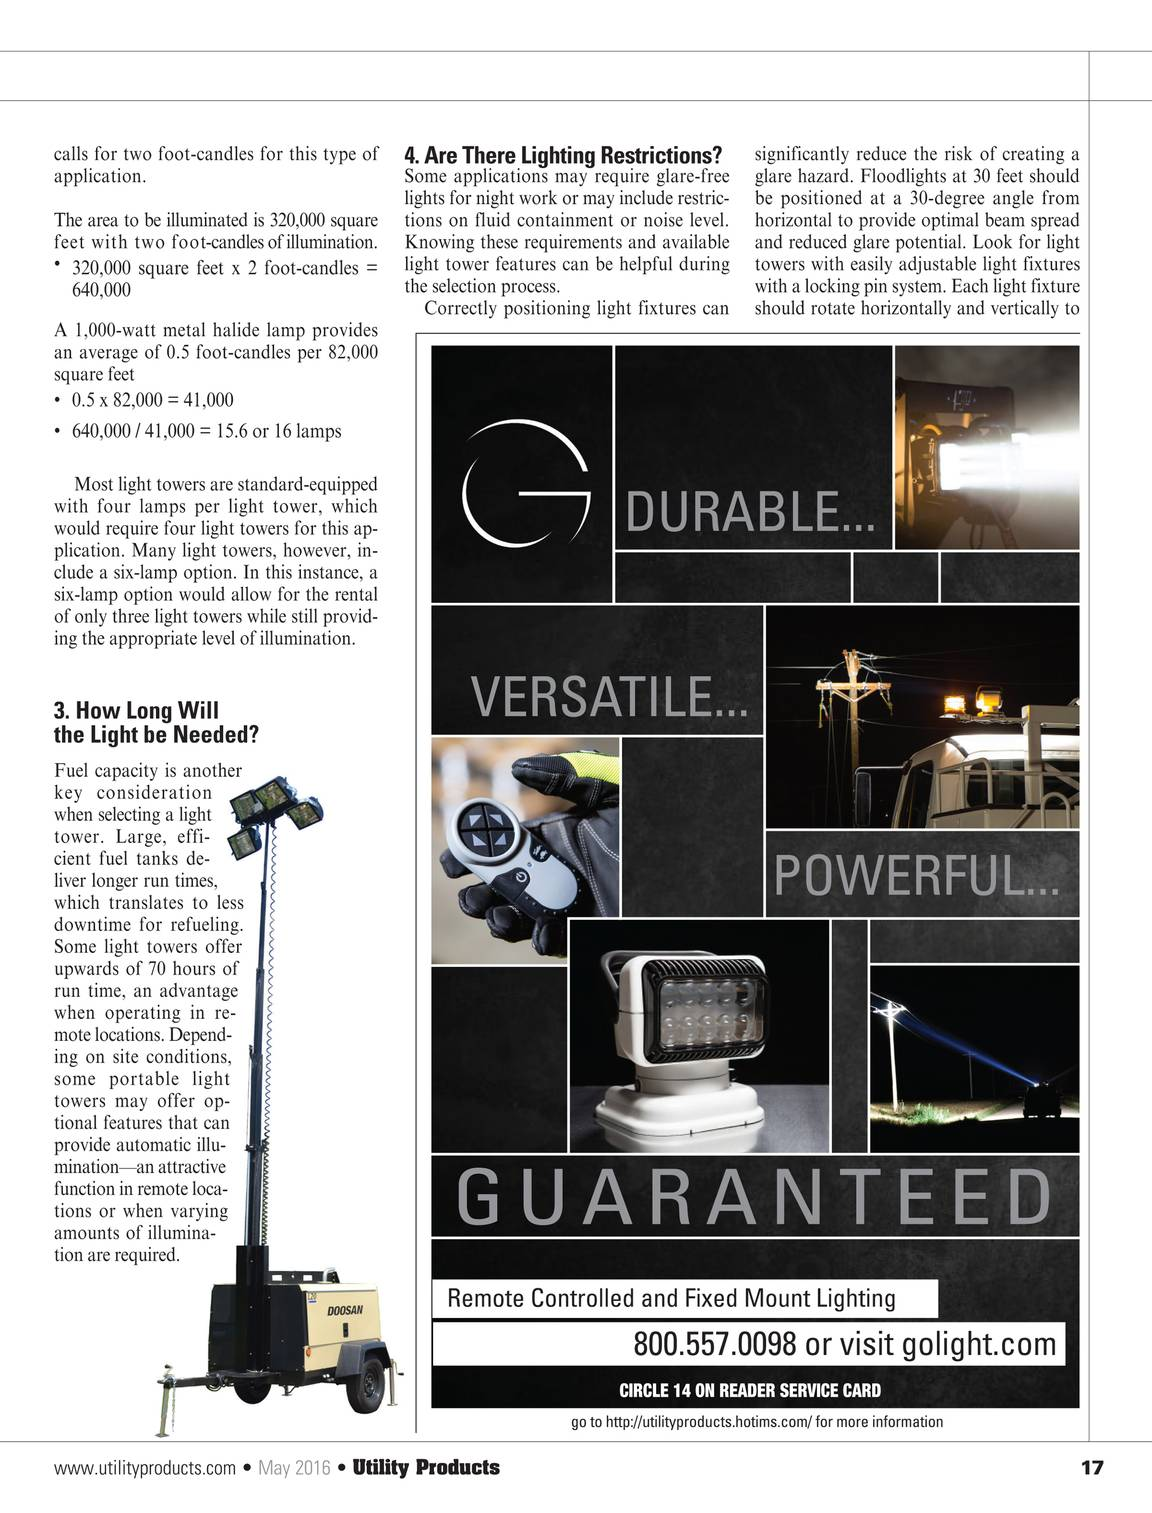 Utility Products - May 2016 - page 16